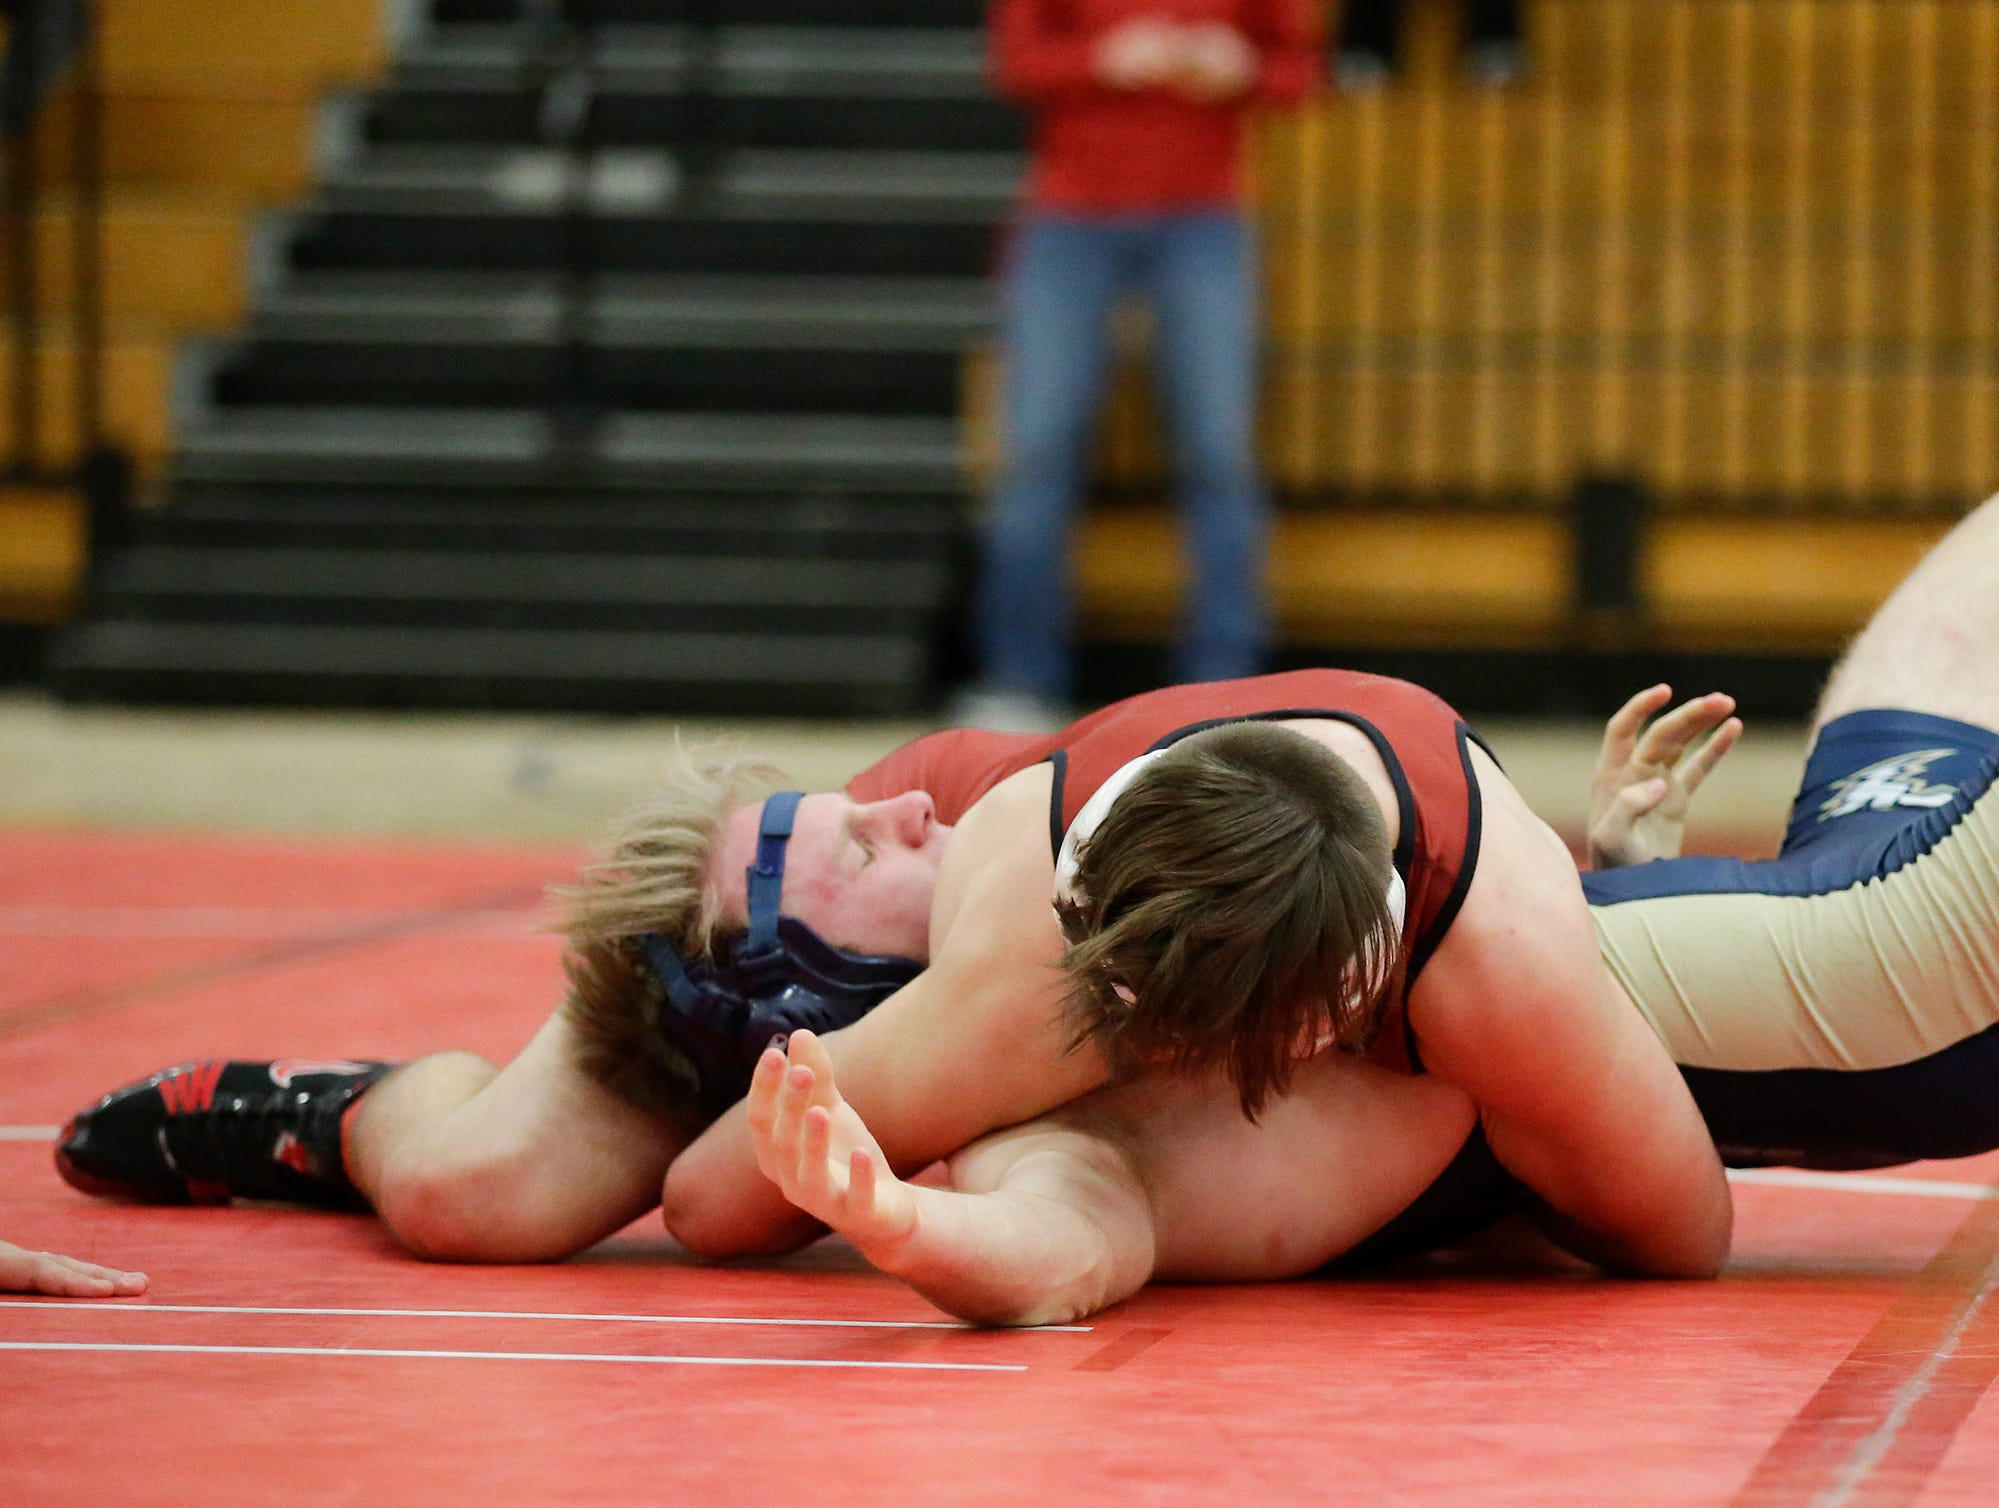 Fond du Lac High School's Josiah Streblow wrestles Appleton North High School's Blake Koehler in a 152-pound match during the Fox Valley Association wrestling championship meet held Saturday, Feb. 2, 2019, in Fond du Lac. Streblow won the match by a pin.